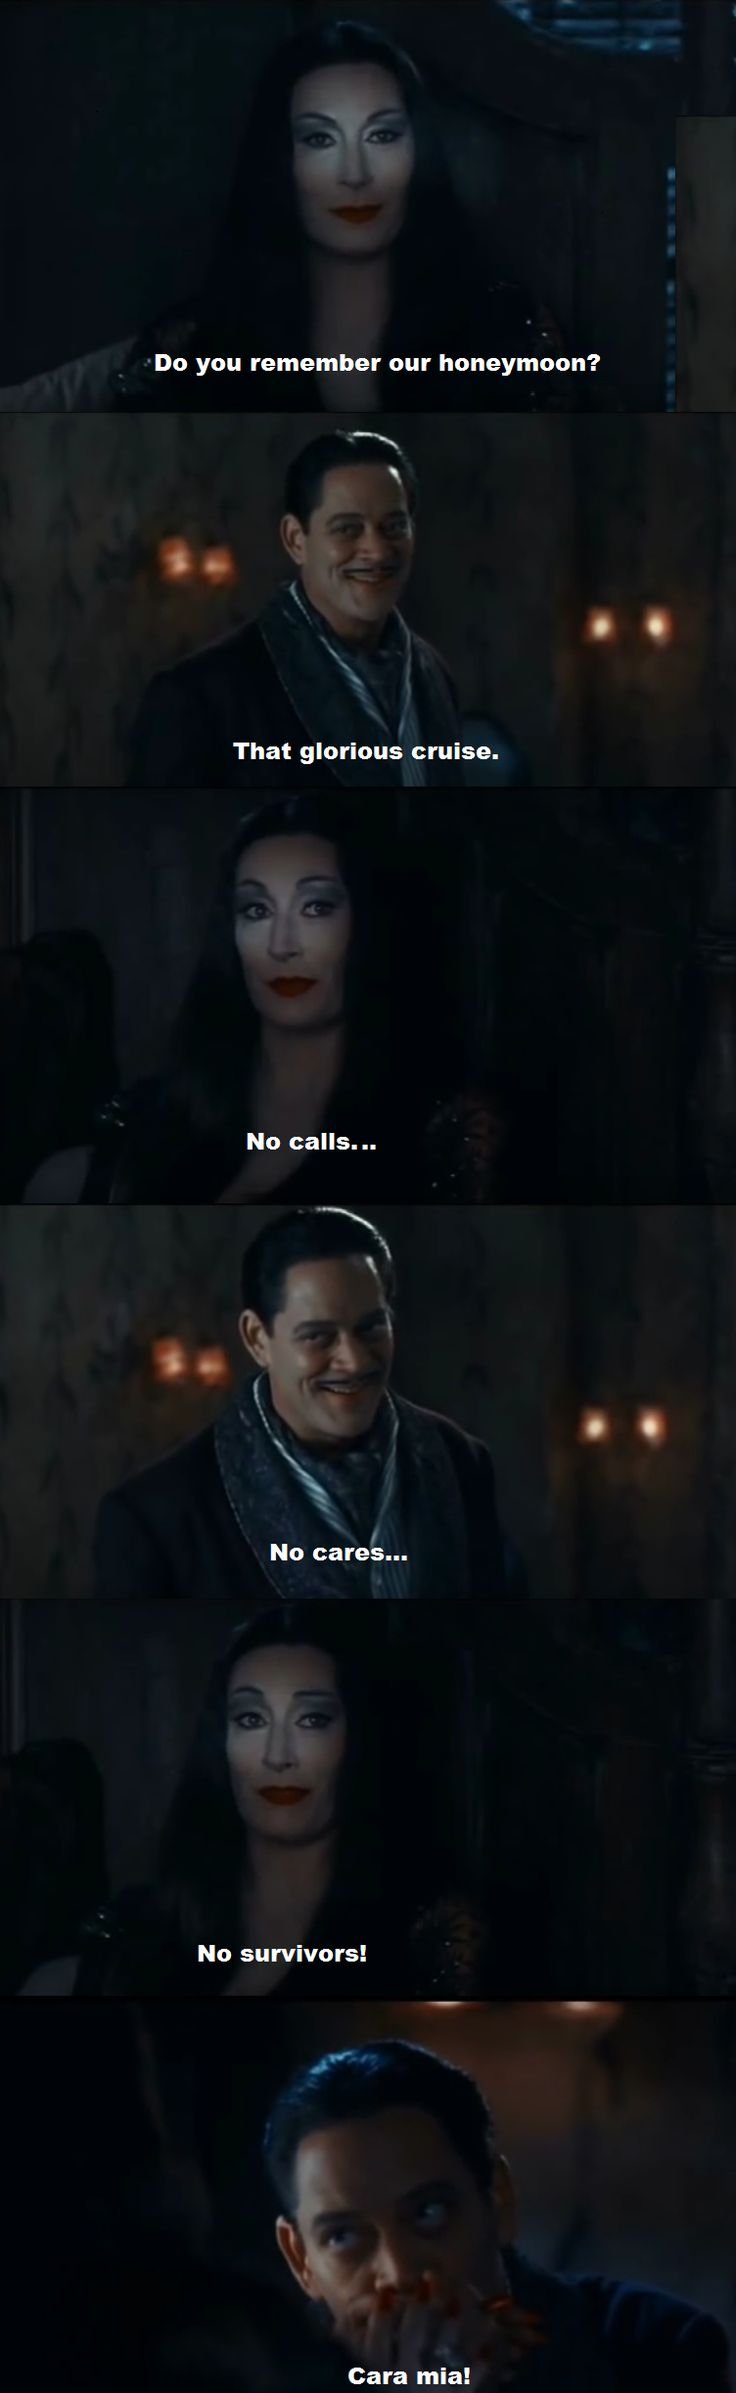 Gomez and Morticia Addams honeymoon cruise